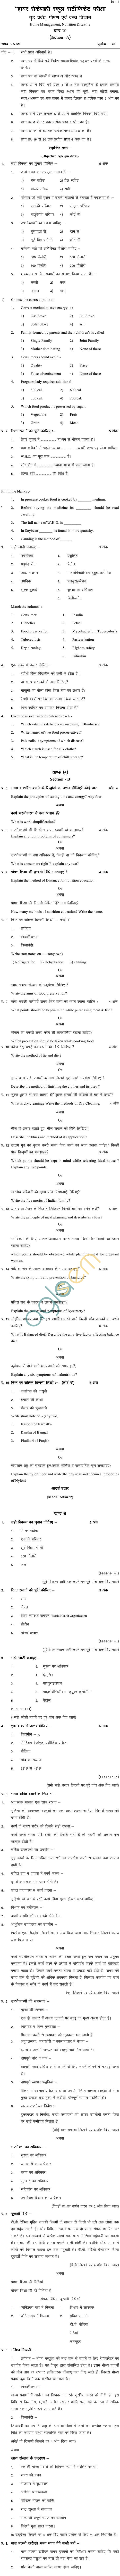 MP Board Class XII Home Mgmt Nutrition and Textile Model Questions & Answers - Set 1